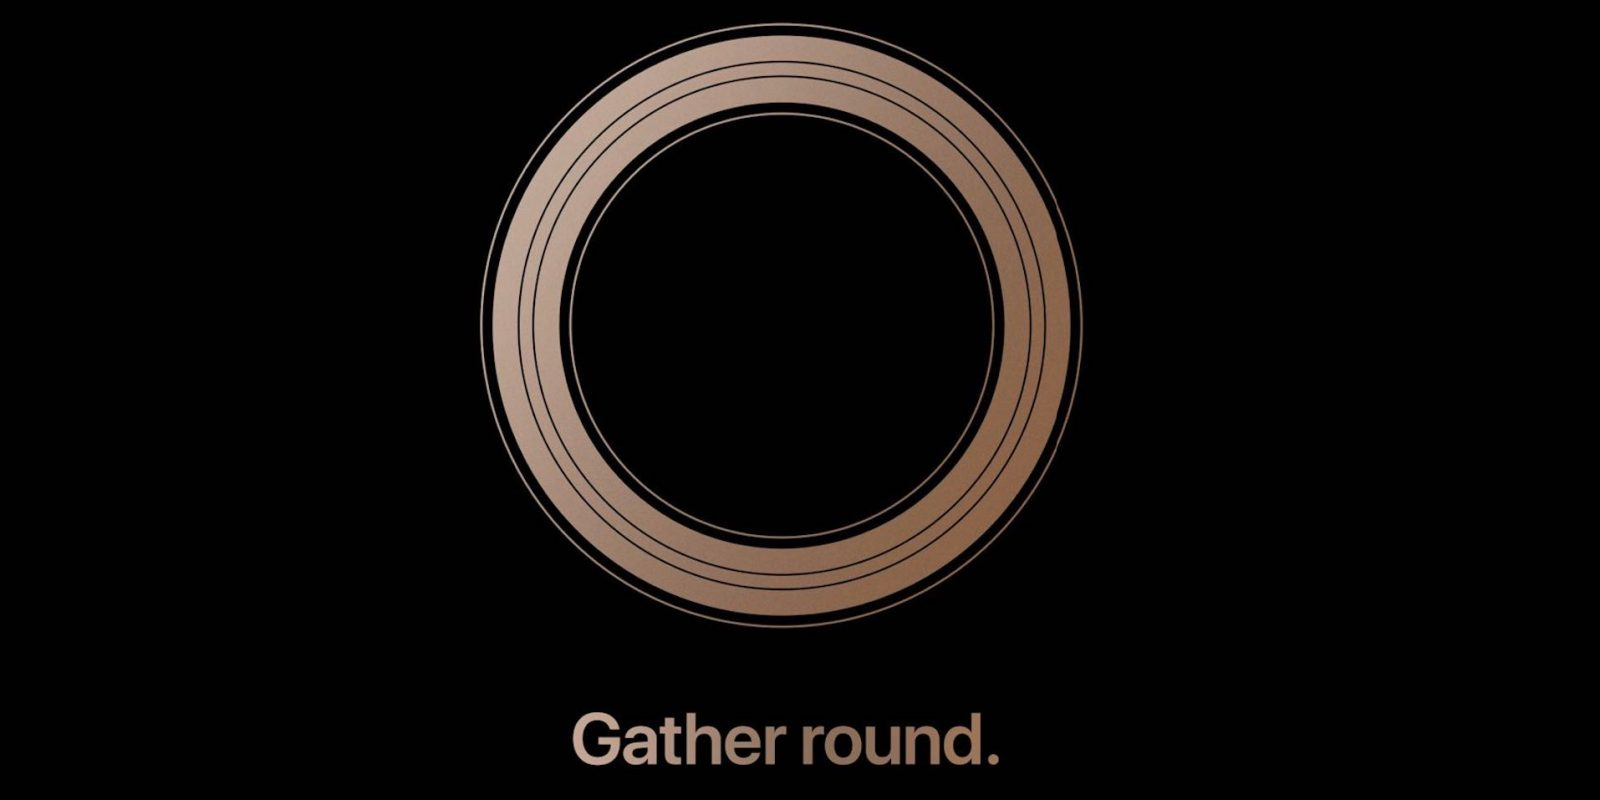 Comment: 6 Things to Watch for During Tomorrow's 'Gather Round' iPhone Event